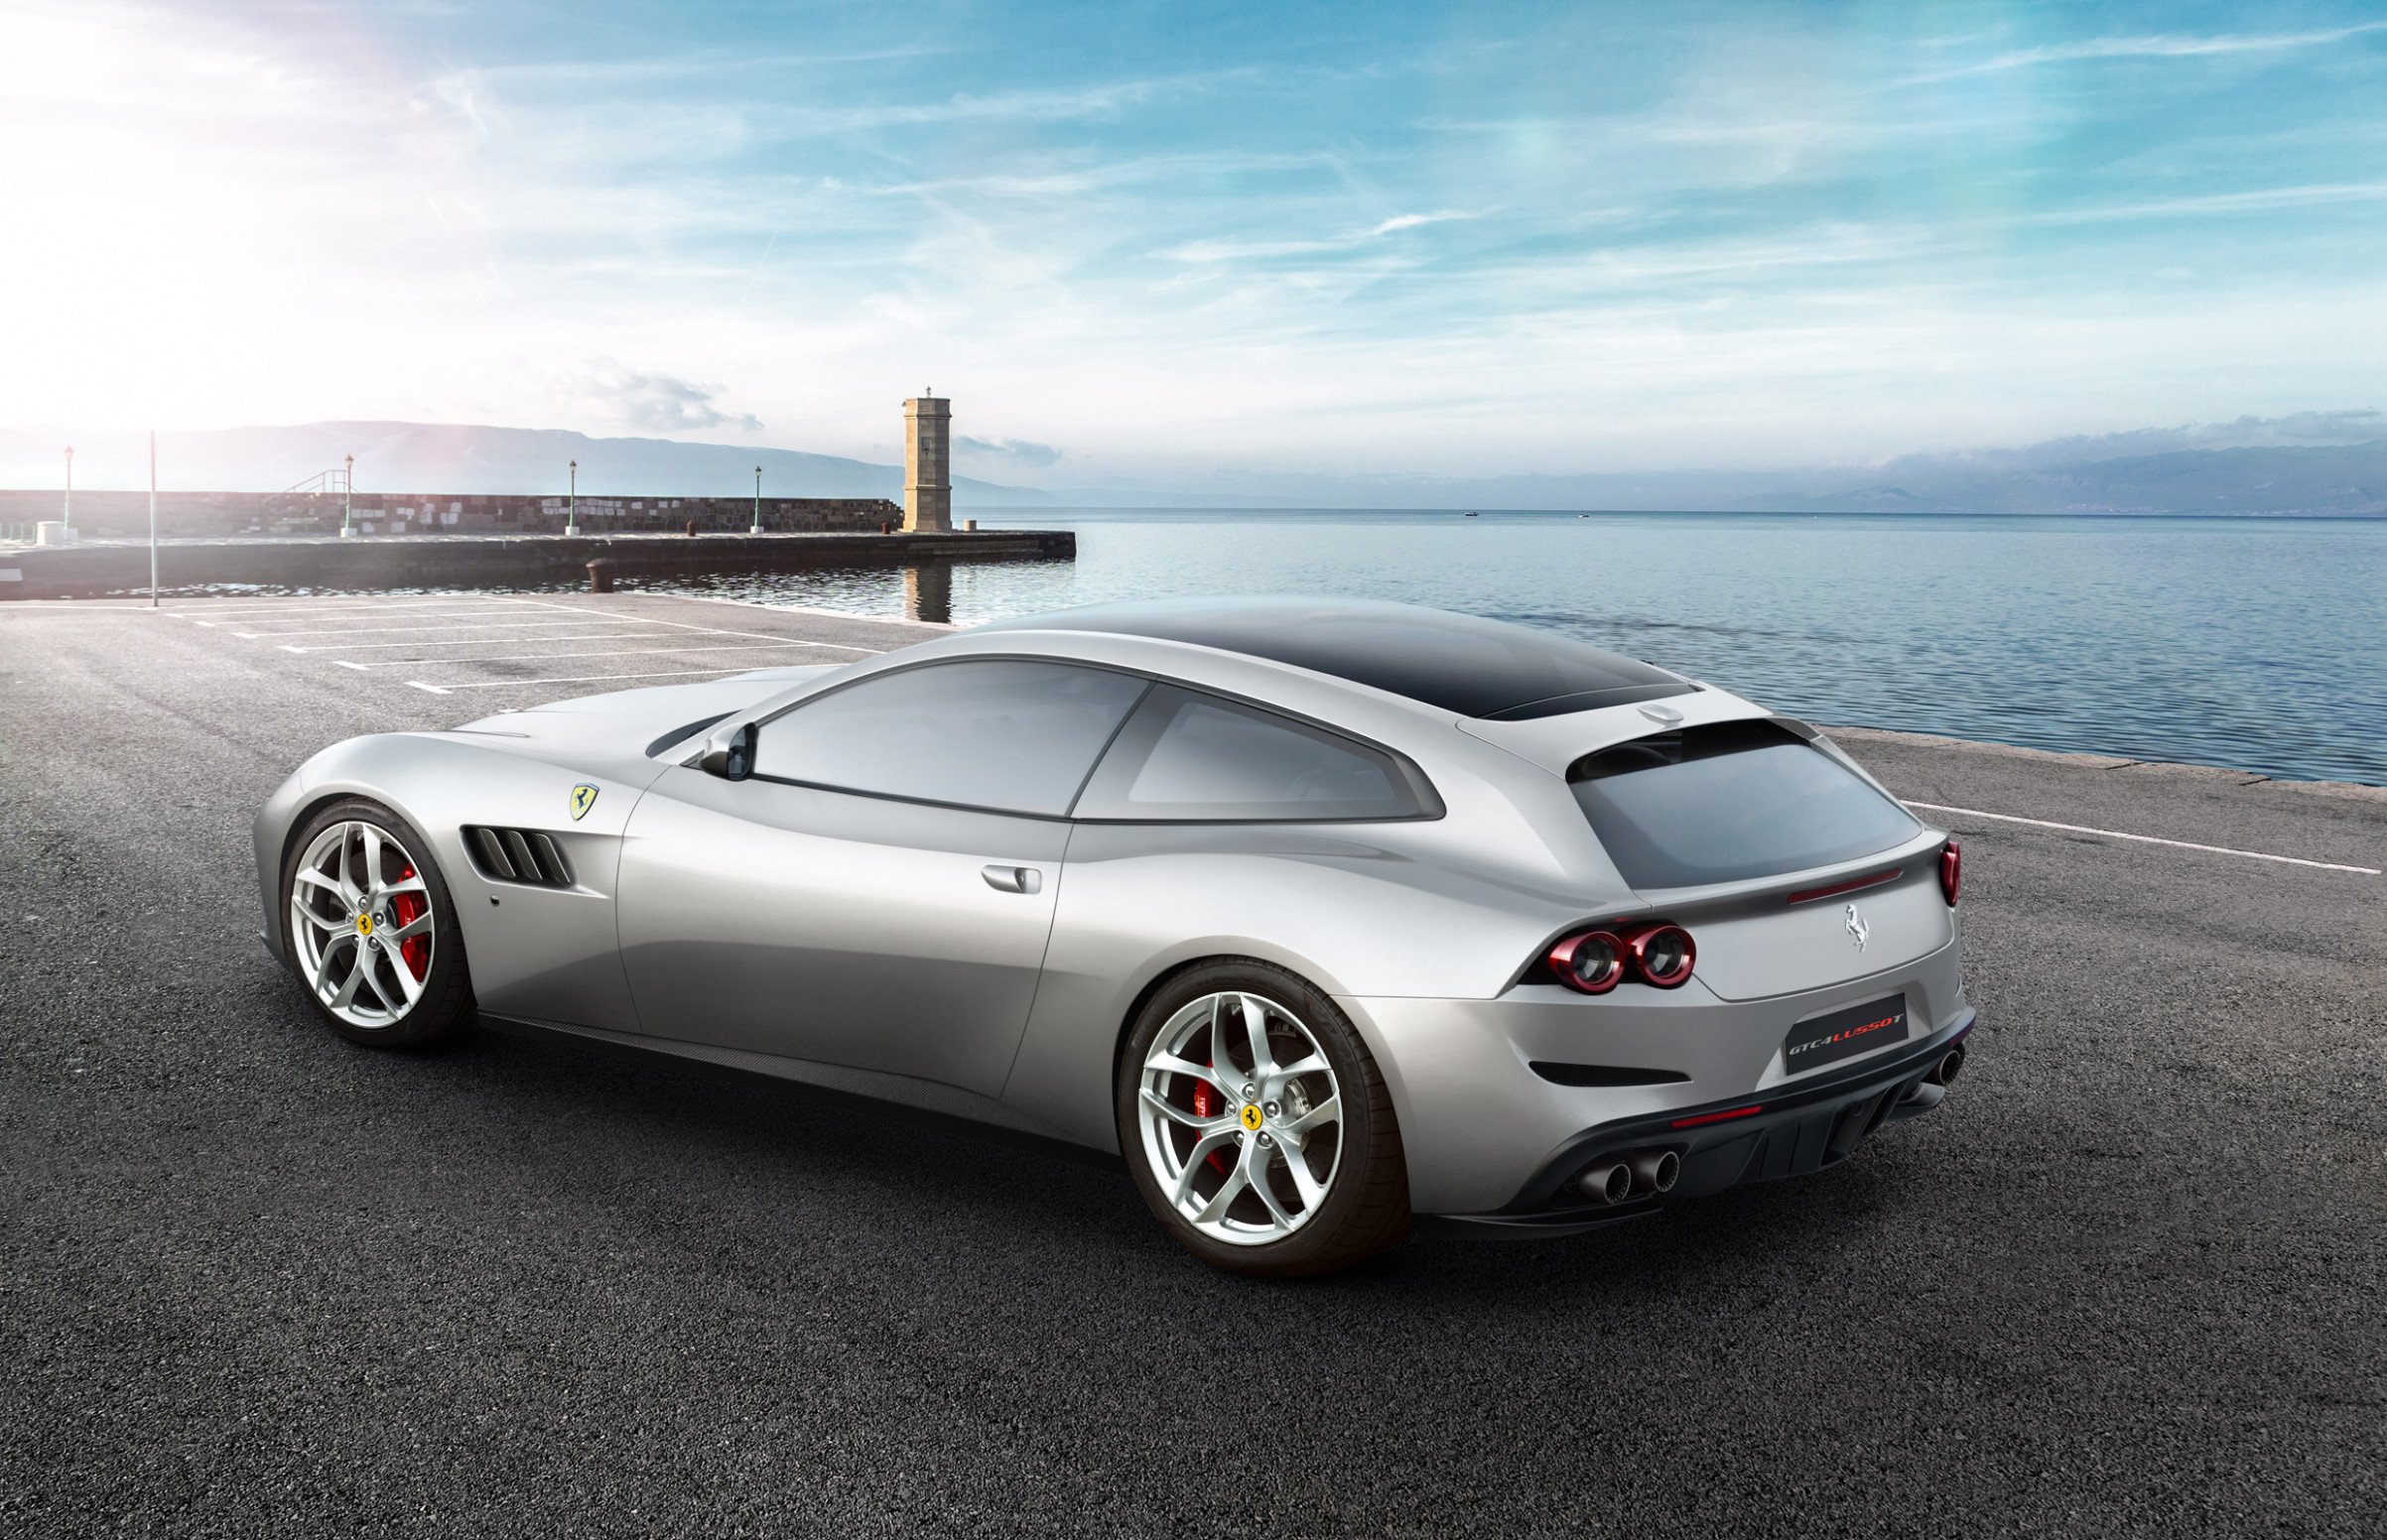 Ferrari GTC6Lusso 6 - View Specs, Prices, Photos & More | Driving